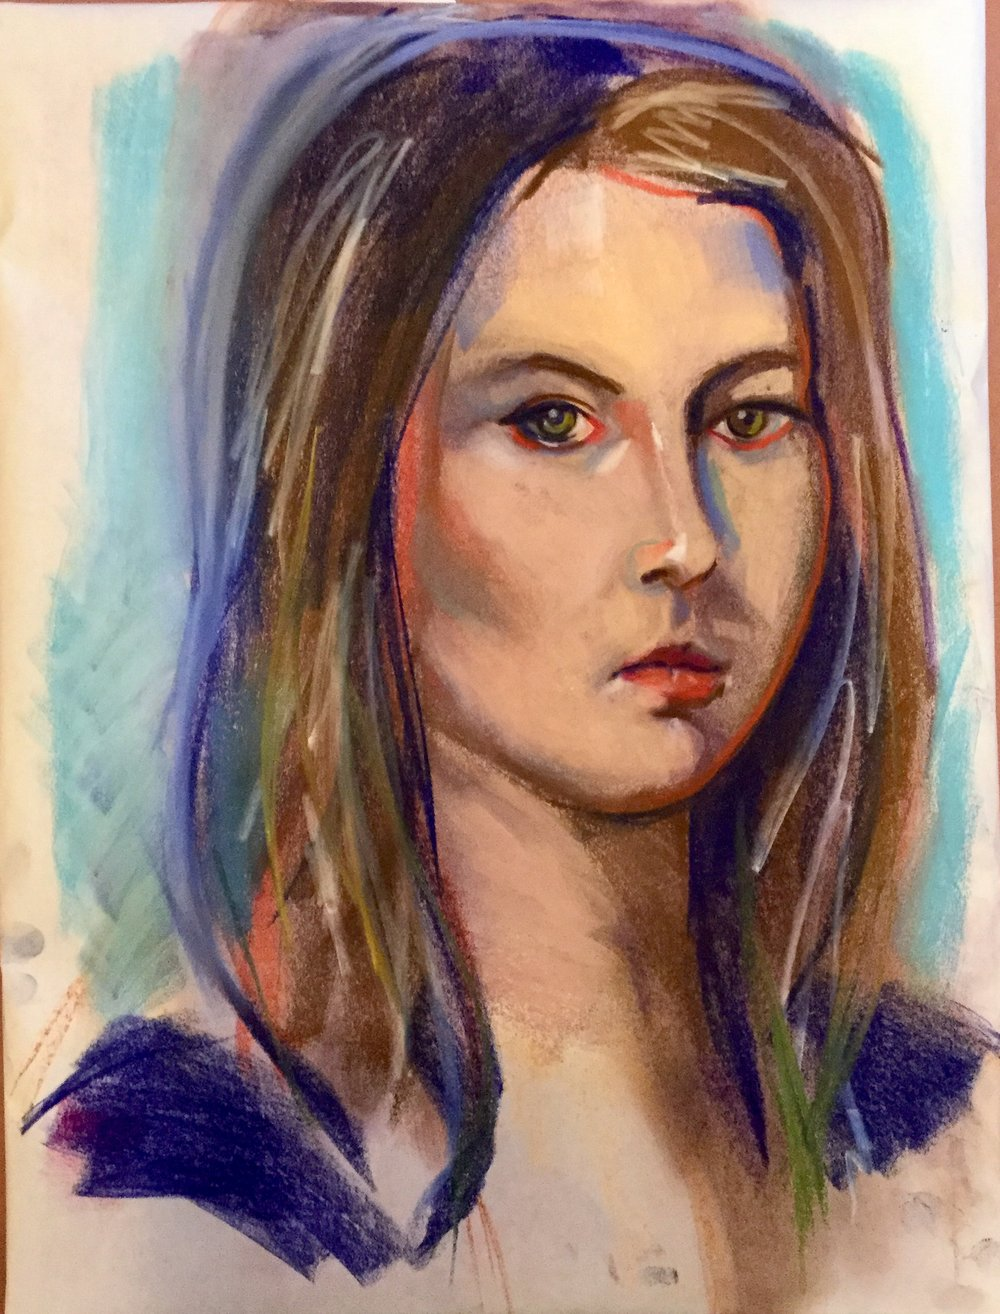 Portrait Classes - Saturdays 11am - 1pm at the Dennis Studio. Please call to reserve a spot as space is limited. $25 class fee.  508-364-7949